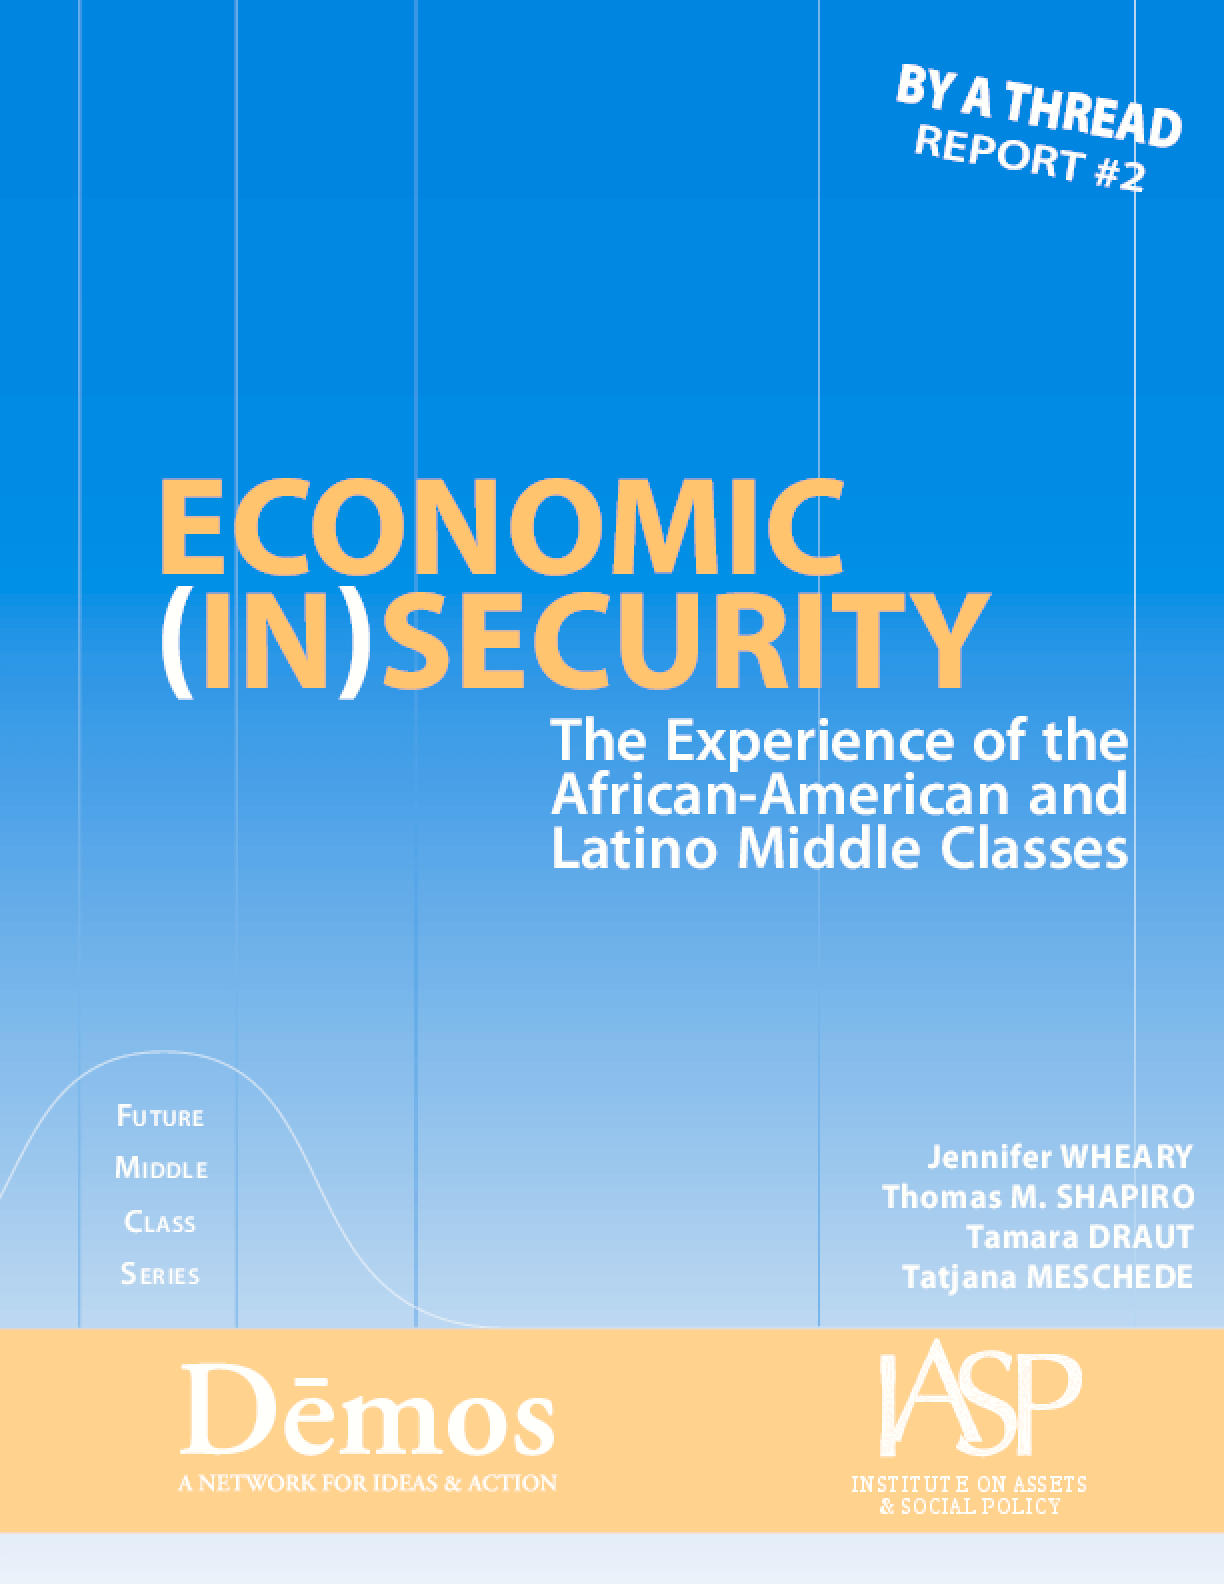 Economic (In)Security: The Experience of the African-American and Latino Middle Classes